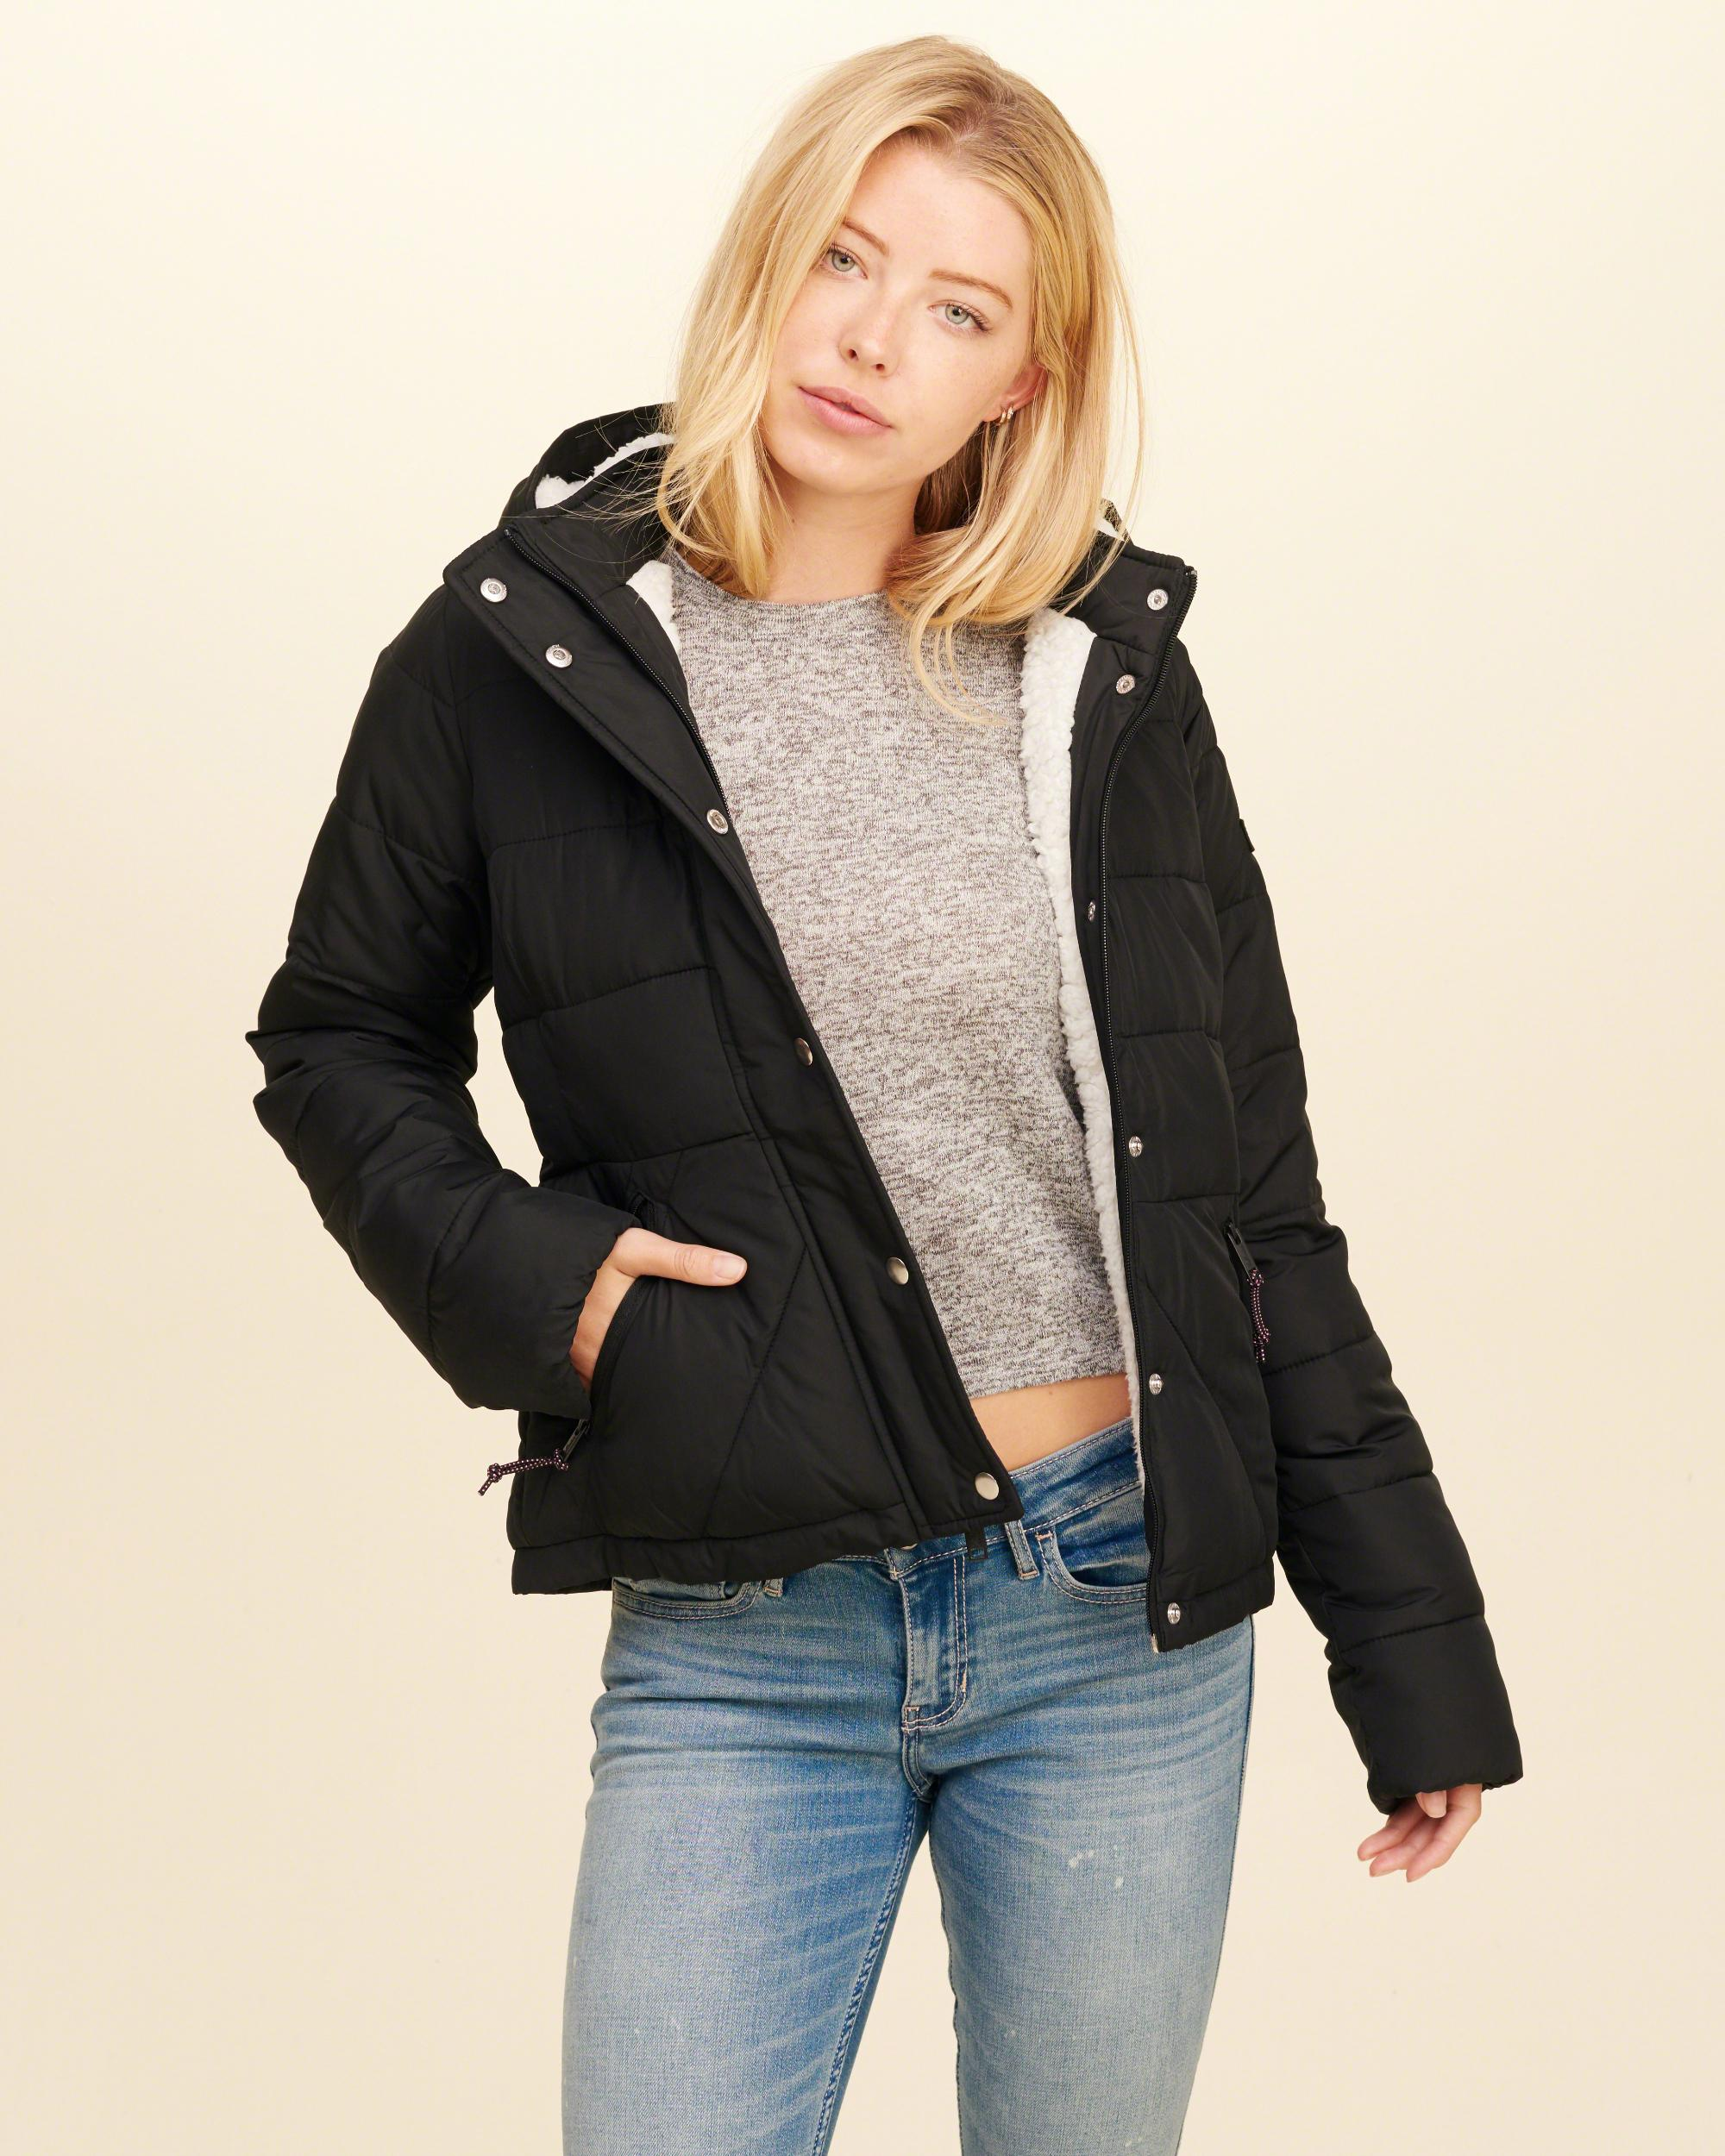 Hollister Synthetic Sherpa-lined Puffer Jacket in Black - Lyst